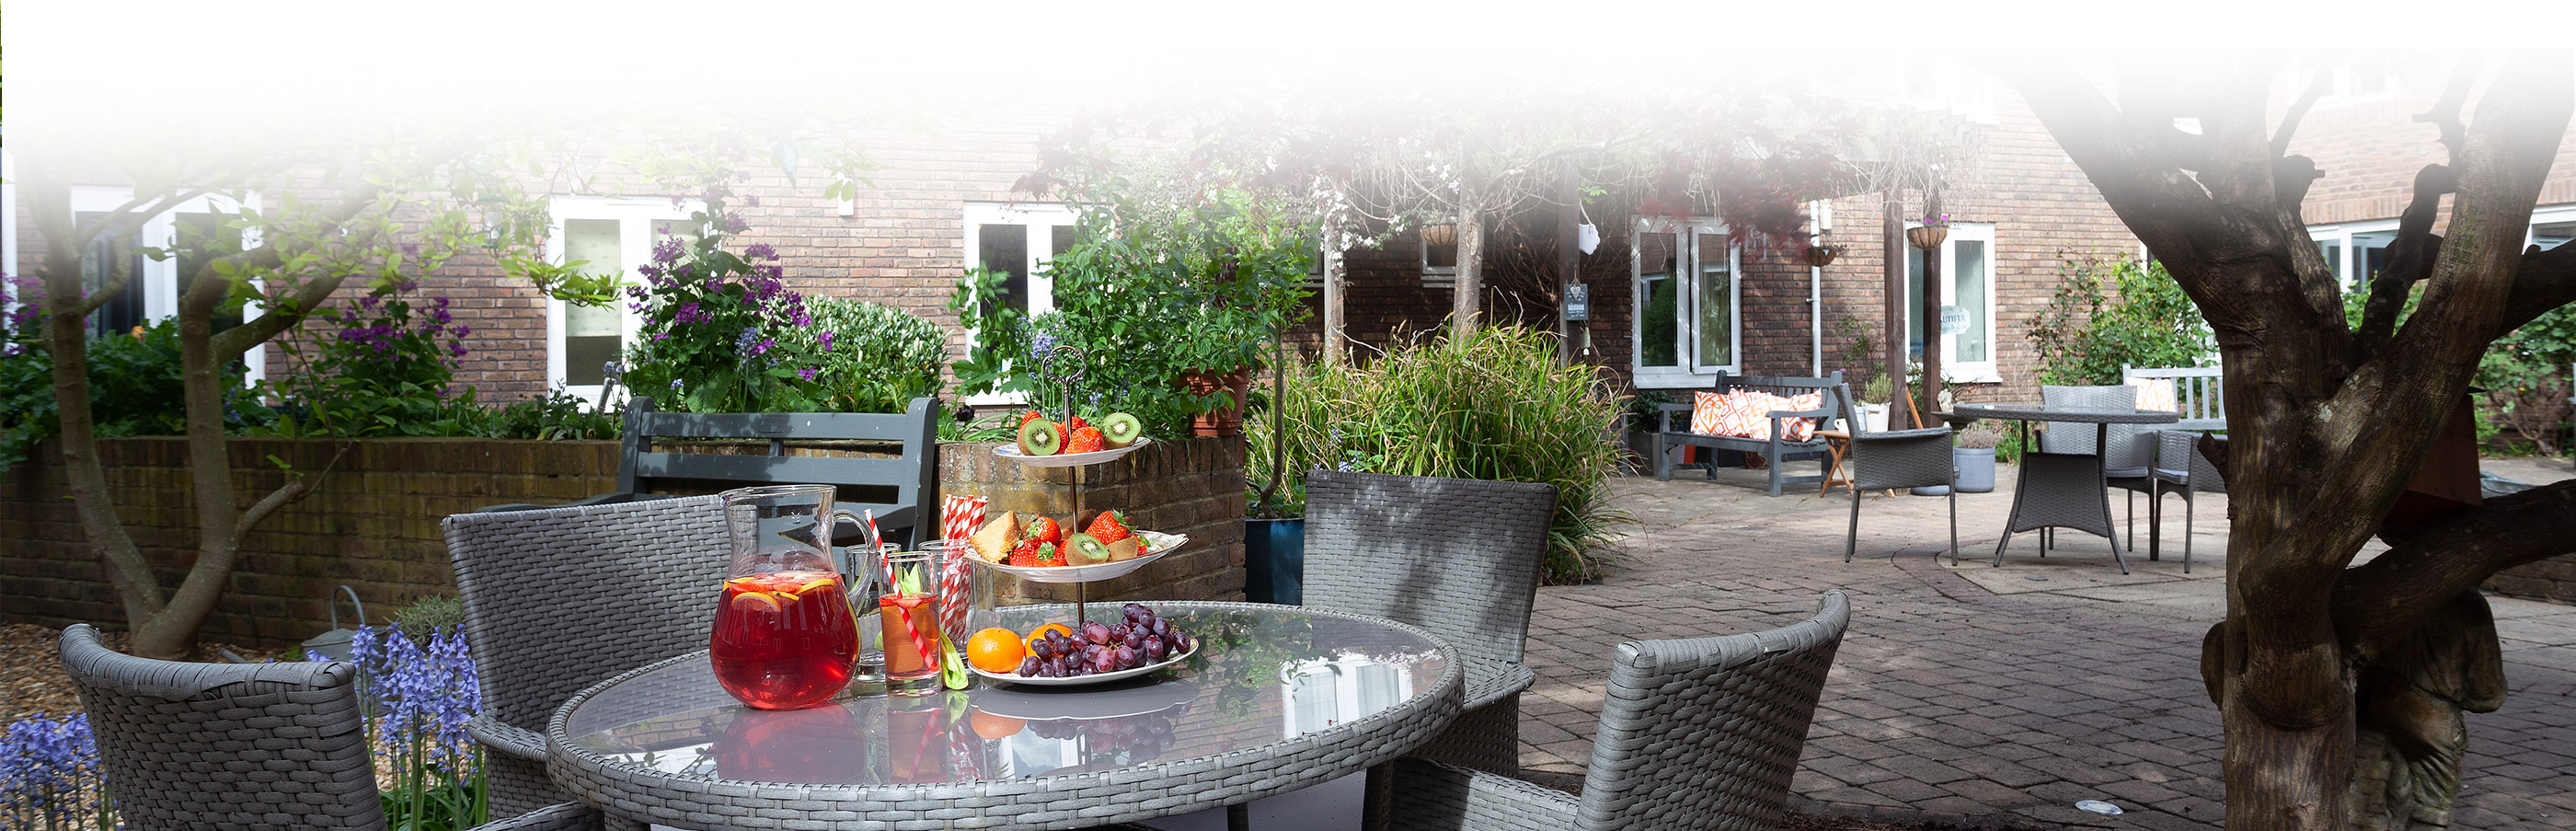 Outside table with fruit at Priory Court Care Home Epsom